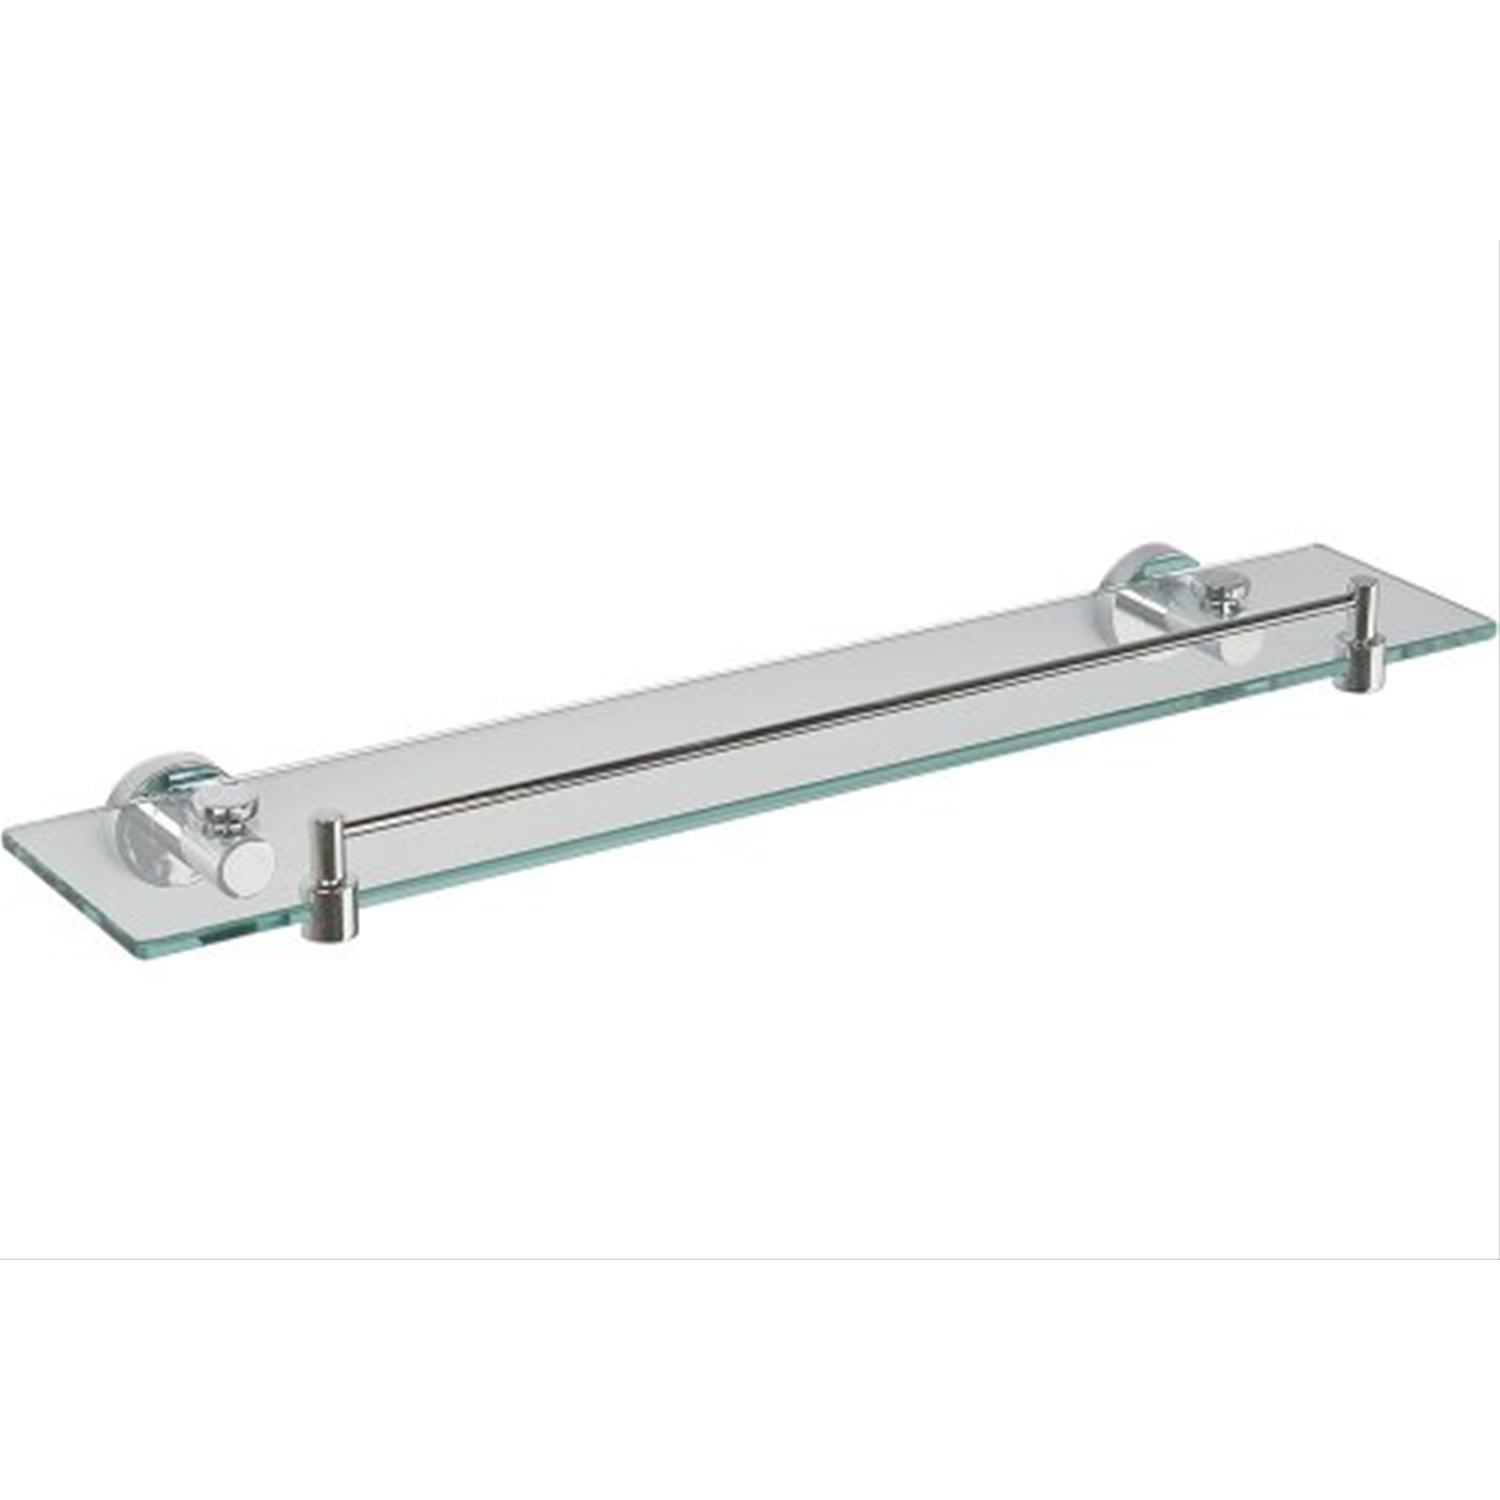 Image of Miller Bond Clear Glass Shelf with Guard Rail